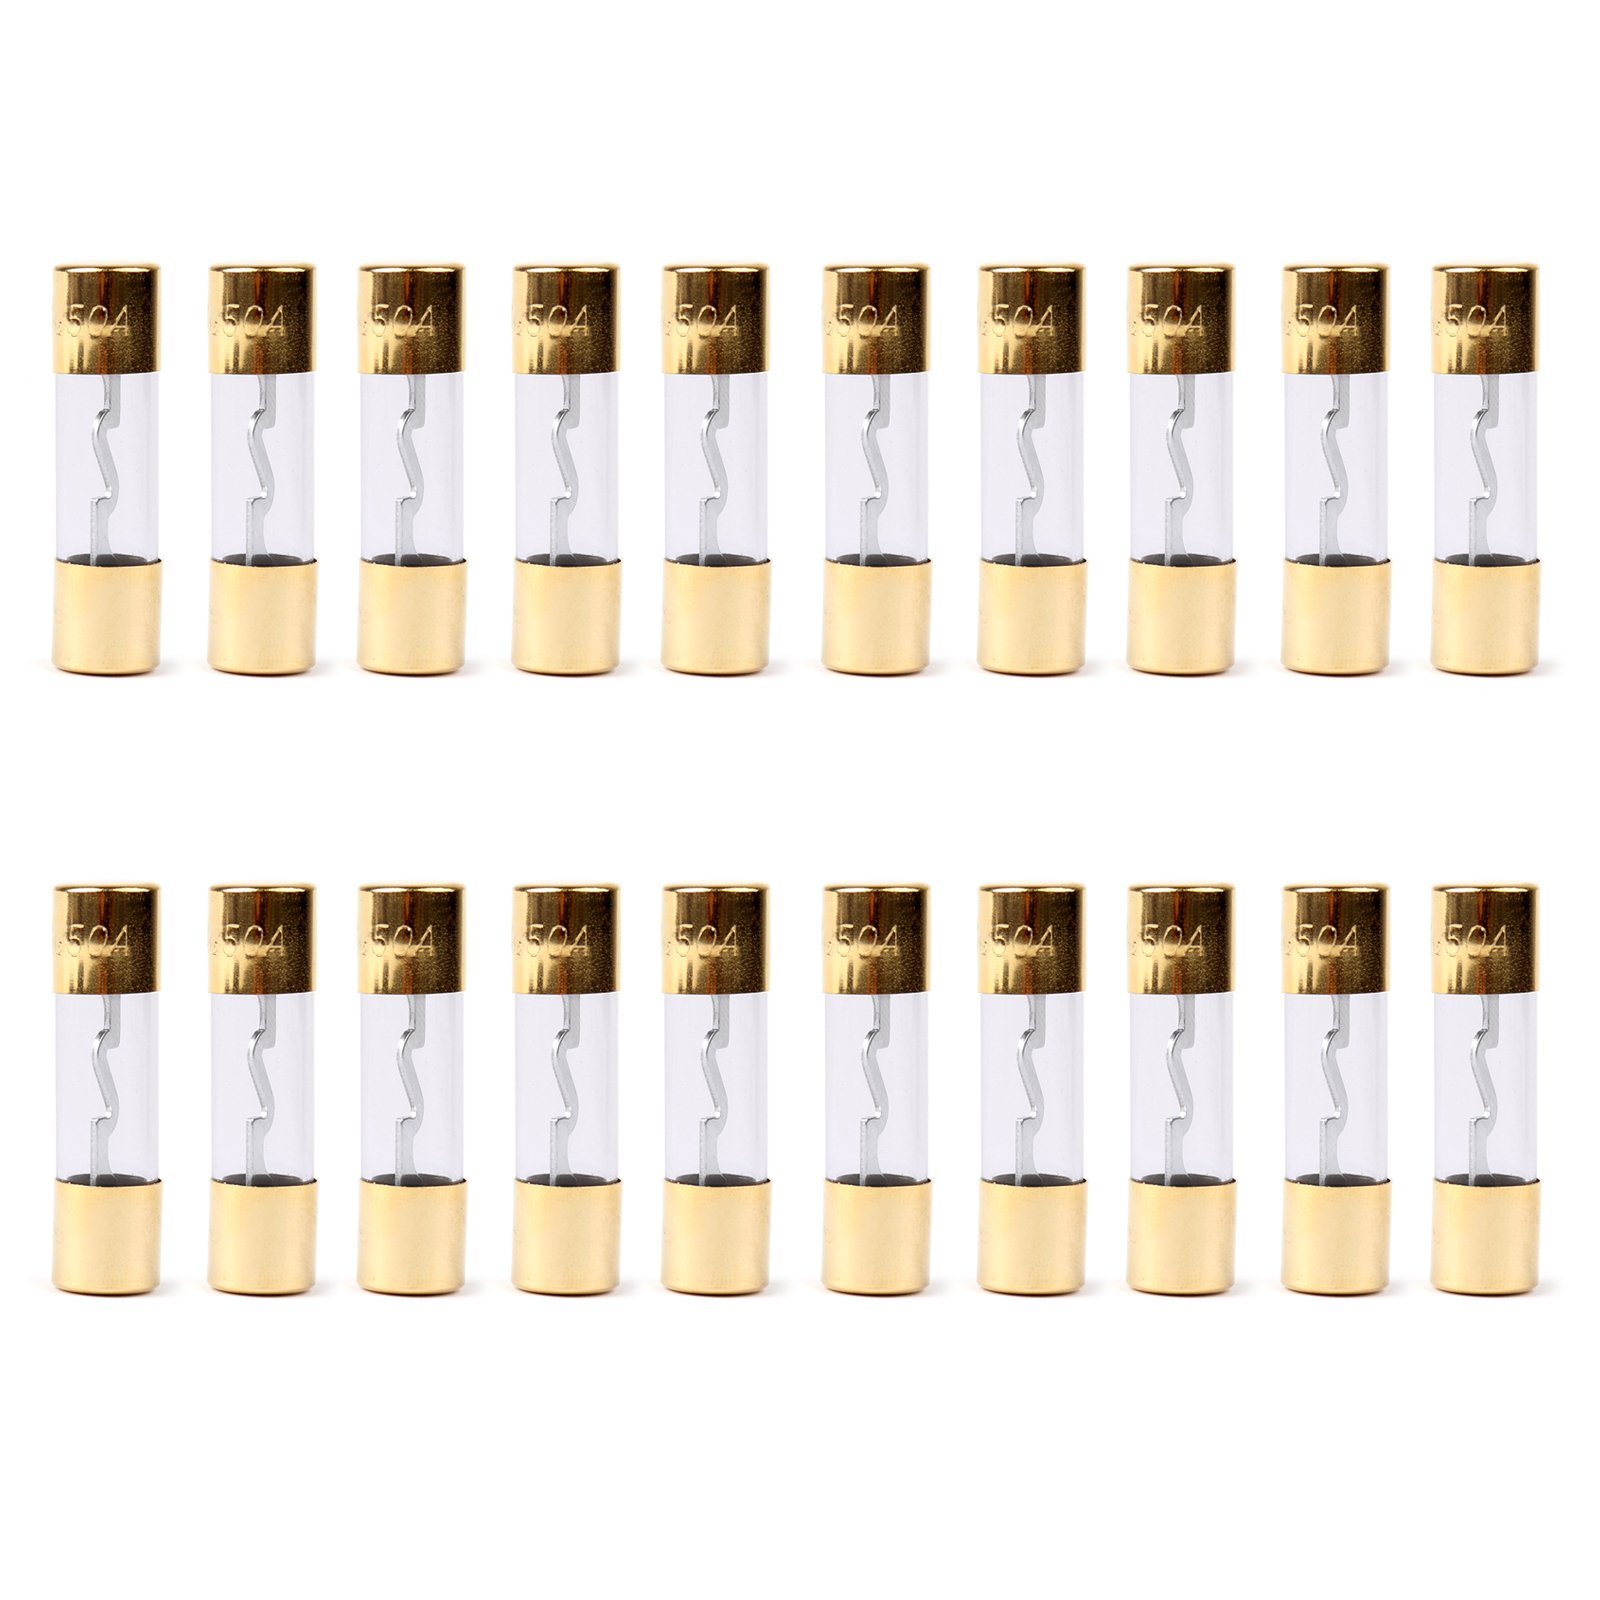 Areyourshop 20Pcs AGU Fuse Car Audio Power Safety Protection Glass Tube Gold Plated 50A